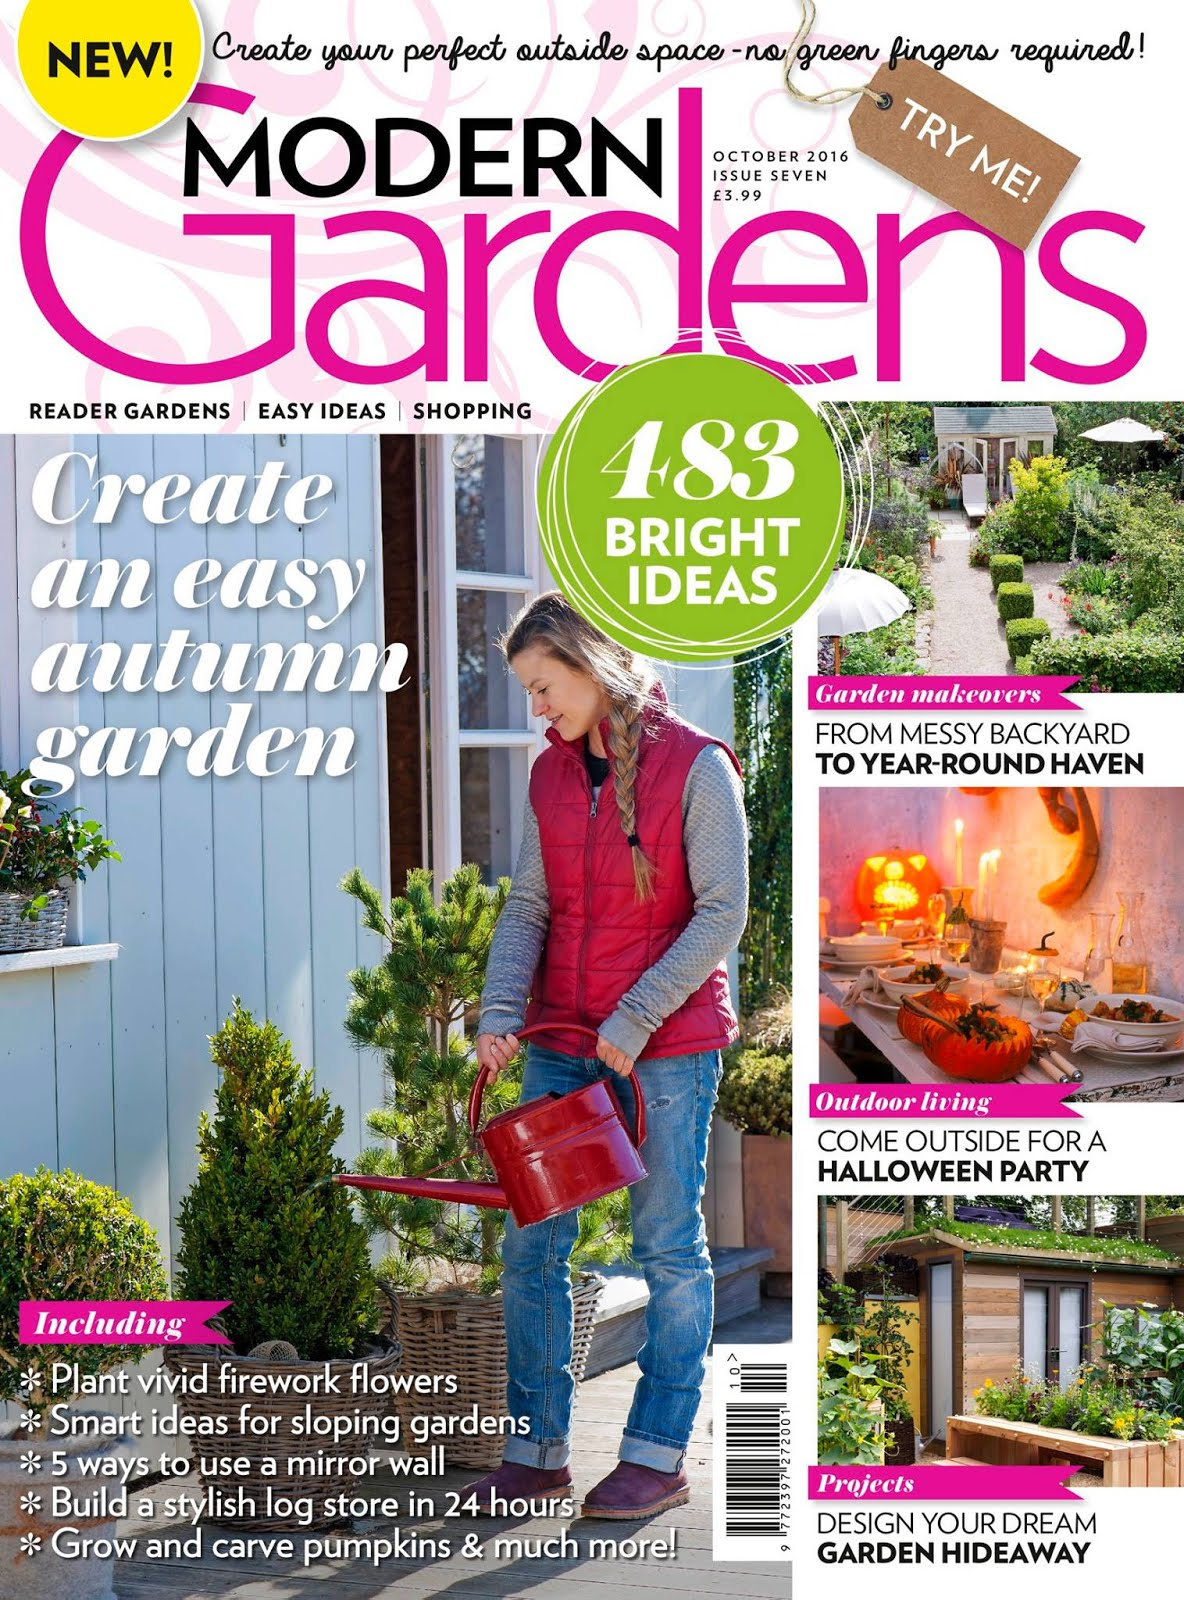 FEATURED IN MODERN GARDENS MAGAZINE